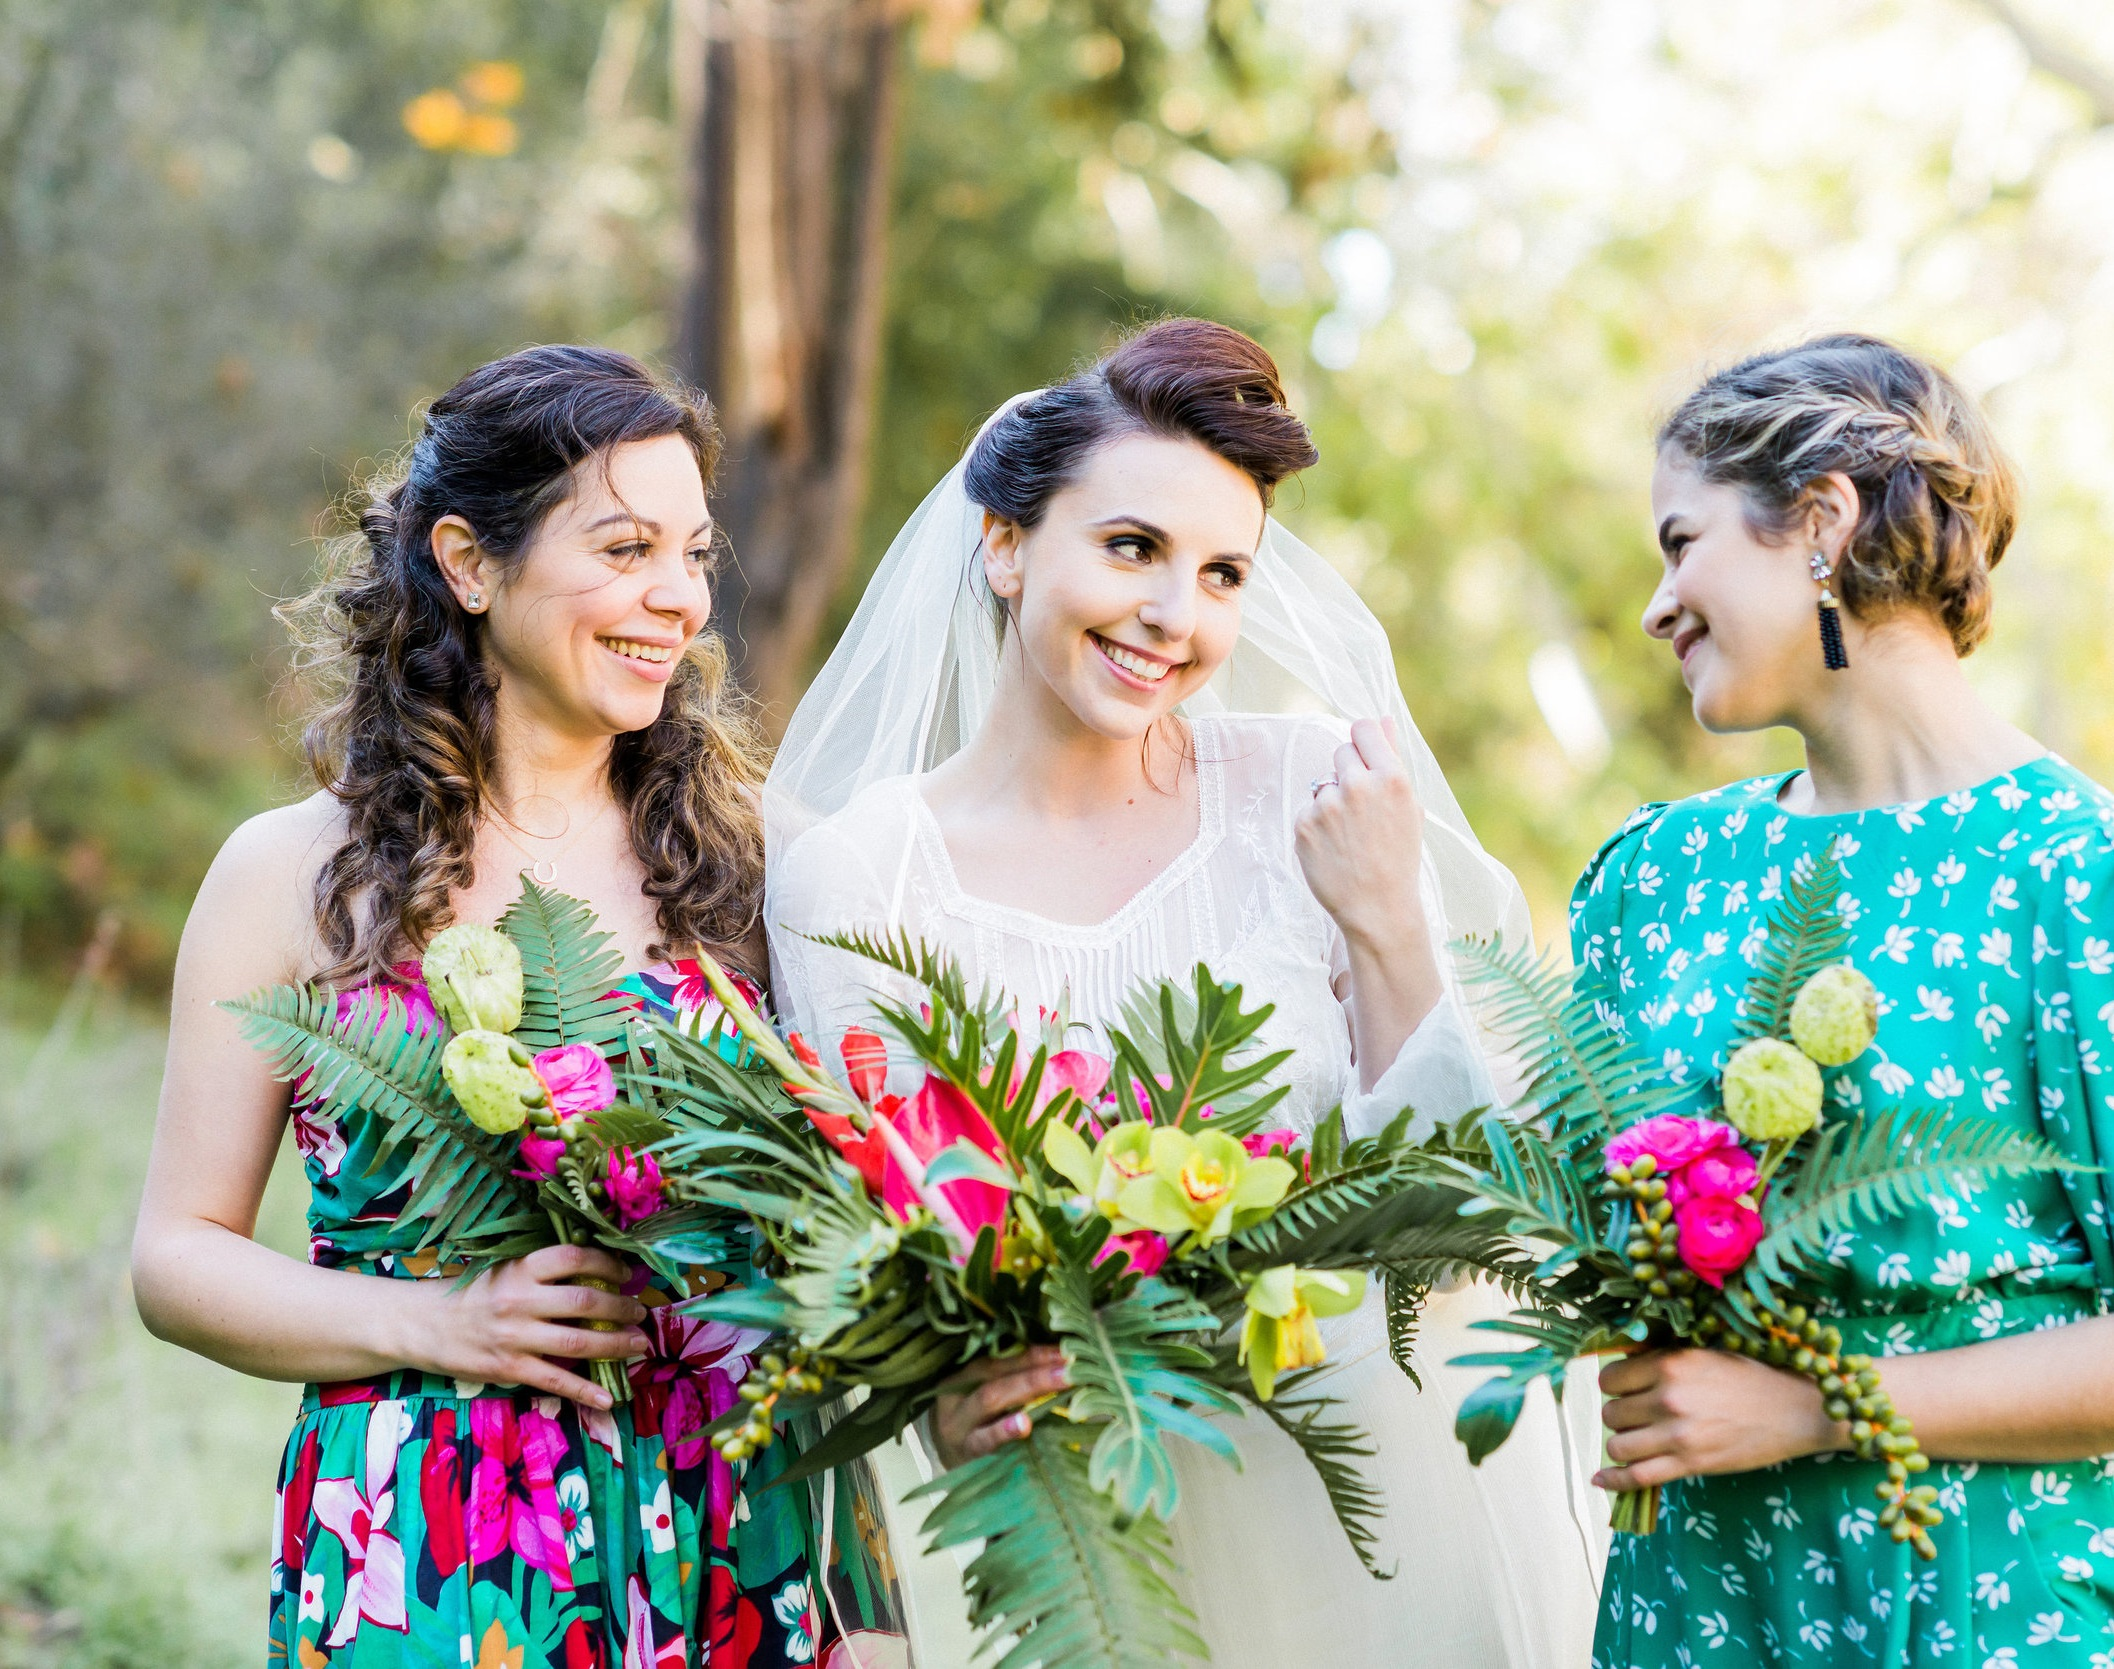 Friends & Family - starting at $1750The Bride's Bouquet4-6 Bridesmaid Bouquets5-7 Boutonnieres10-12 CenterpiecesBar & Cake flowers